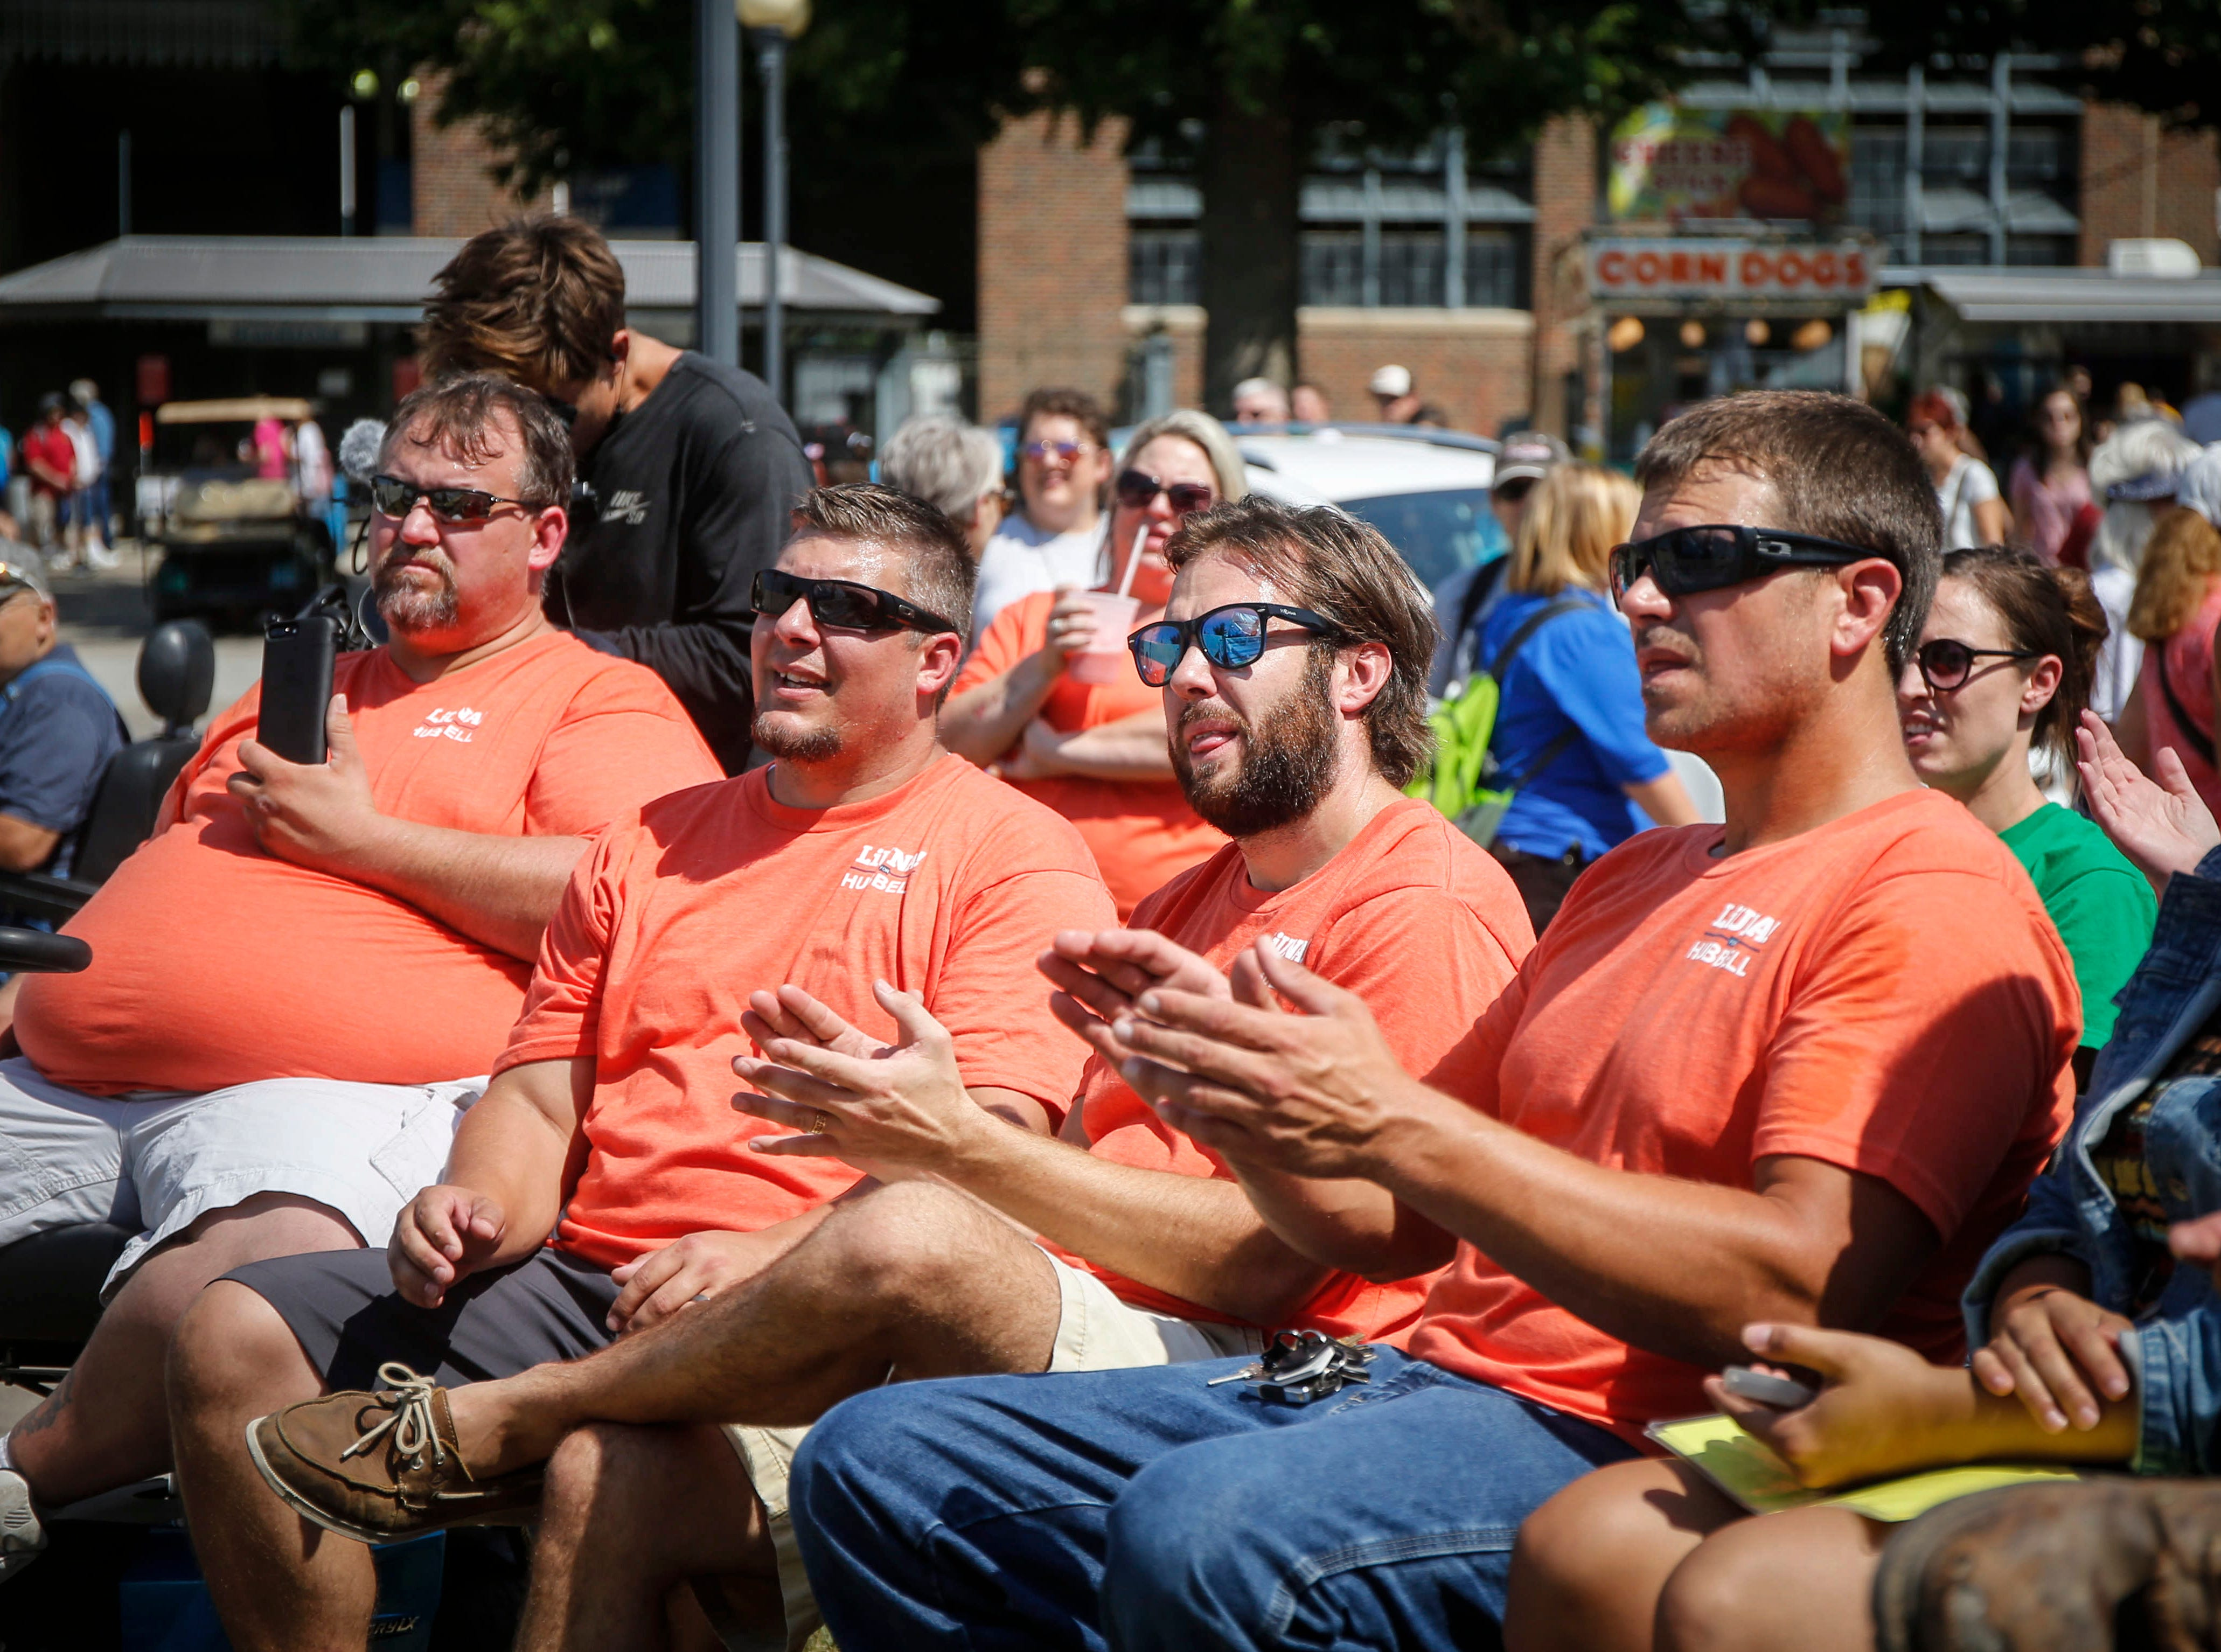 Union labor workers applaud as they hear from Democrat Abby Finkenauer at the Political Soapbox during the Iowa State Fair in Des Moine.